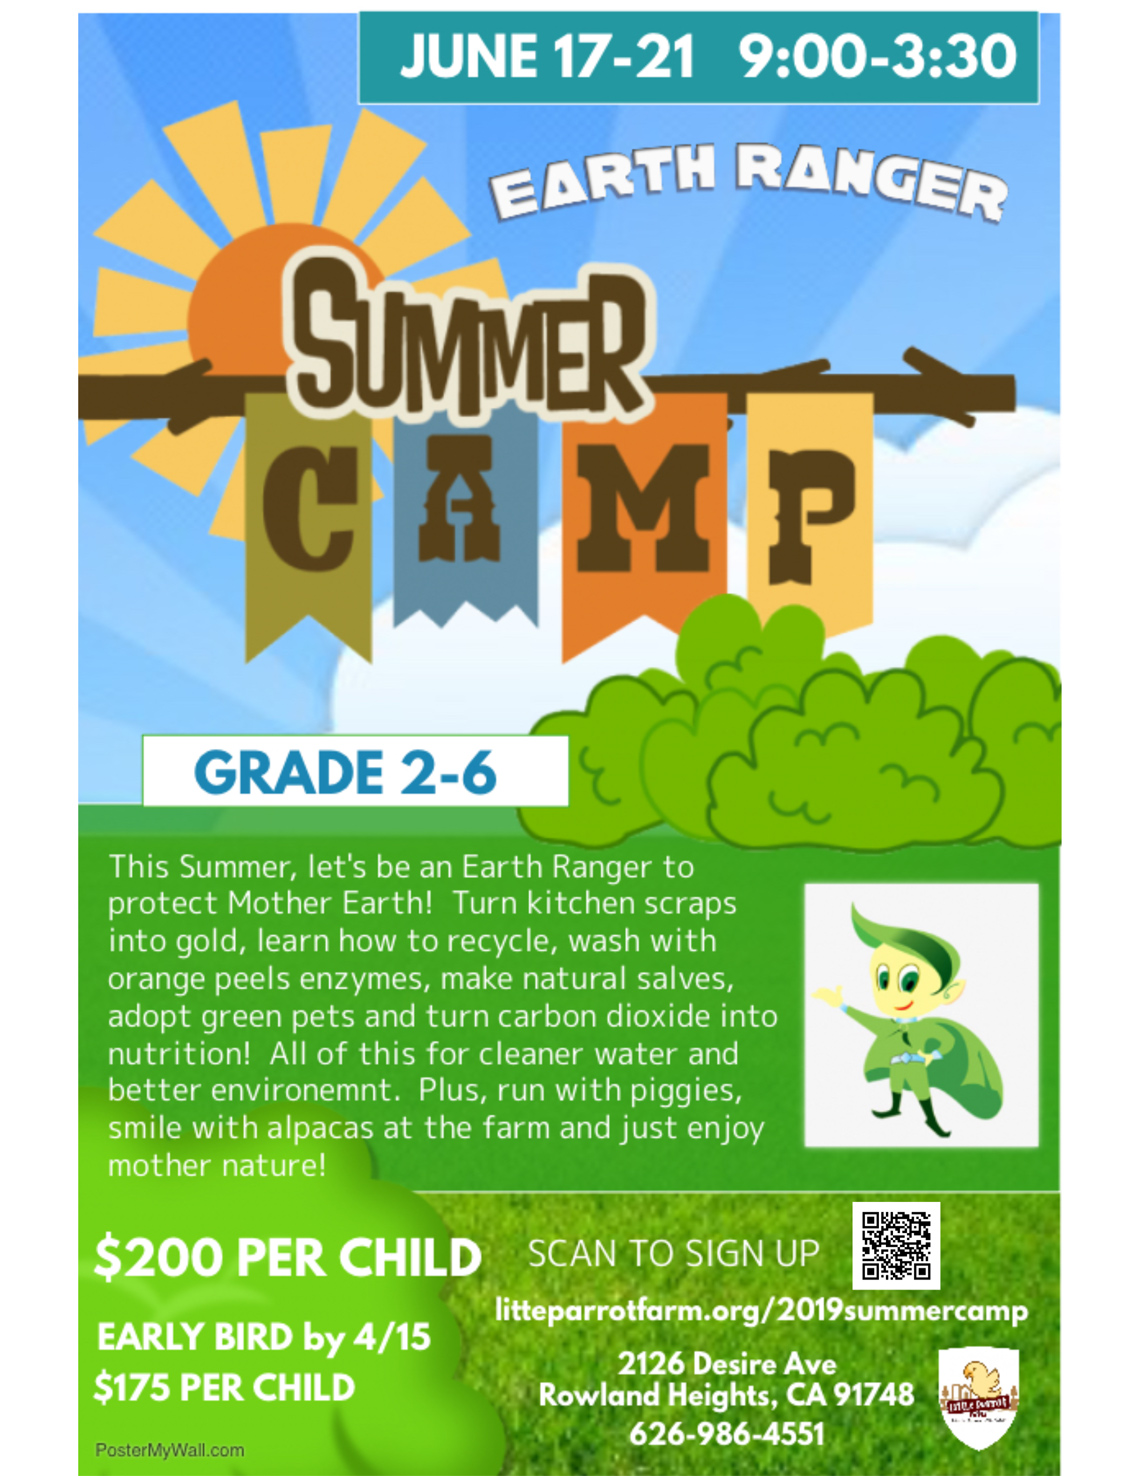 Summer Camp Earth Ranger